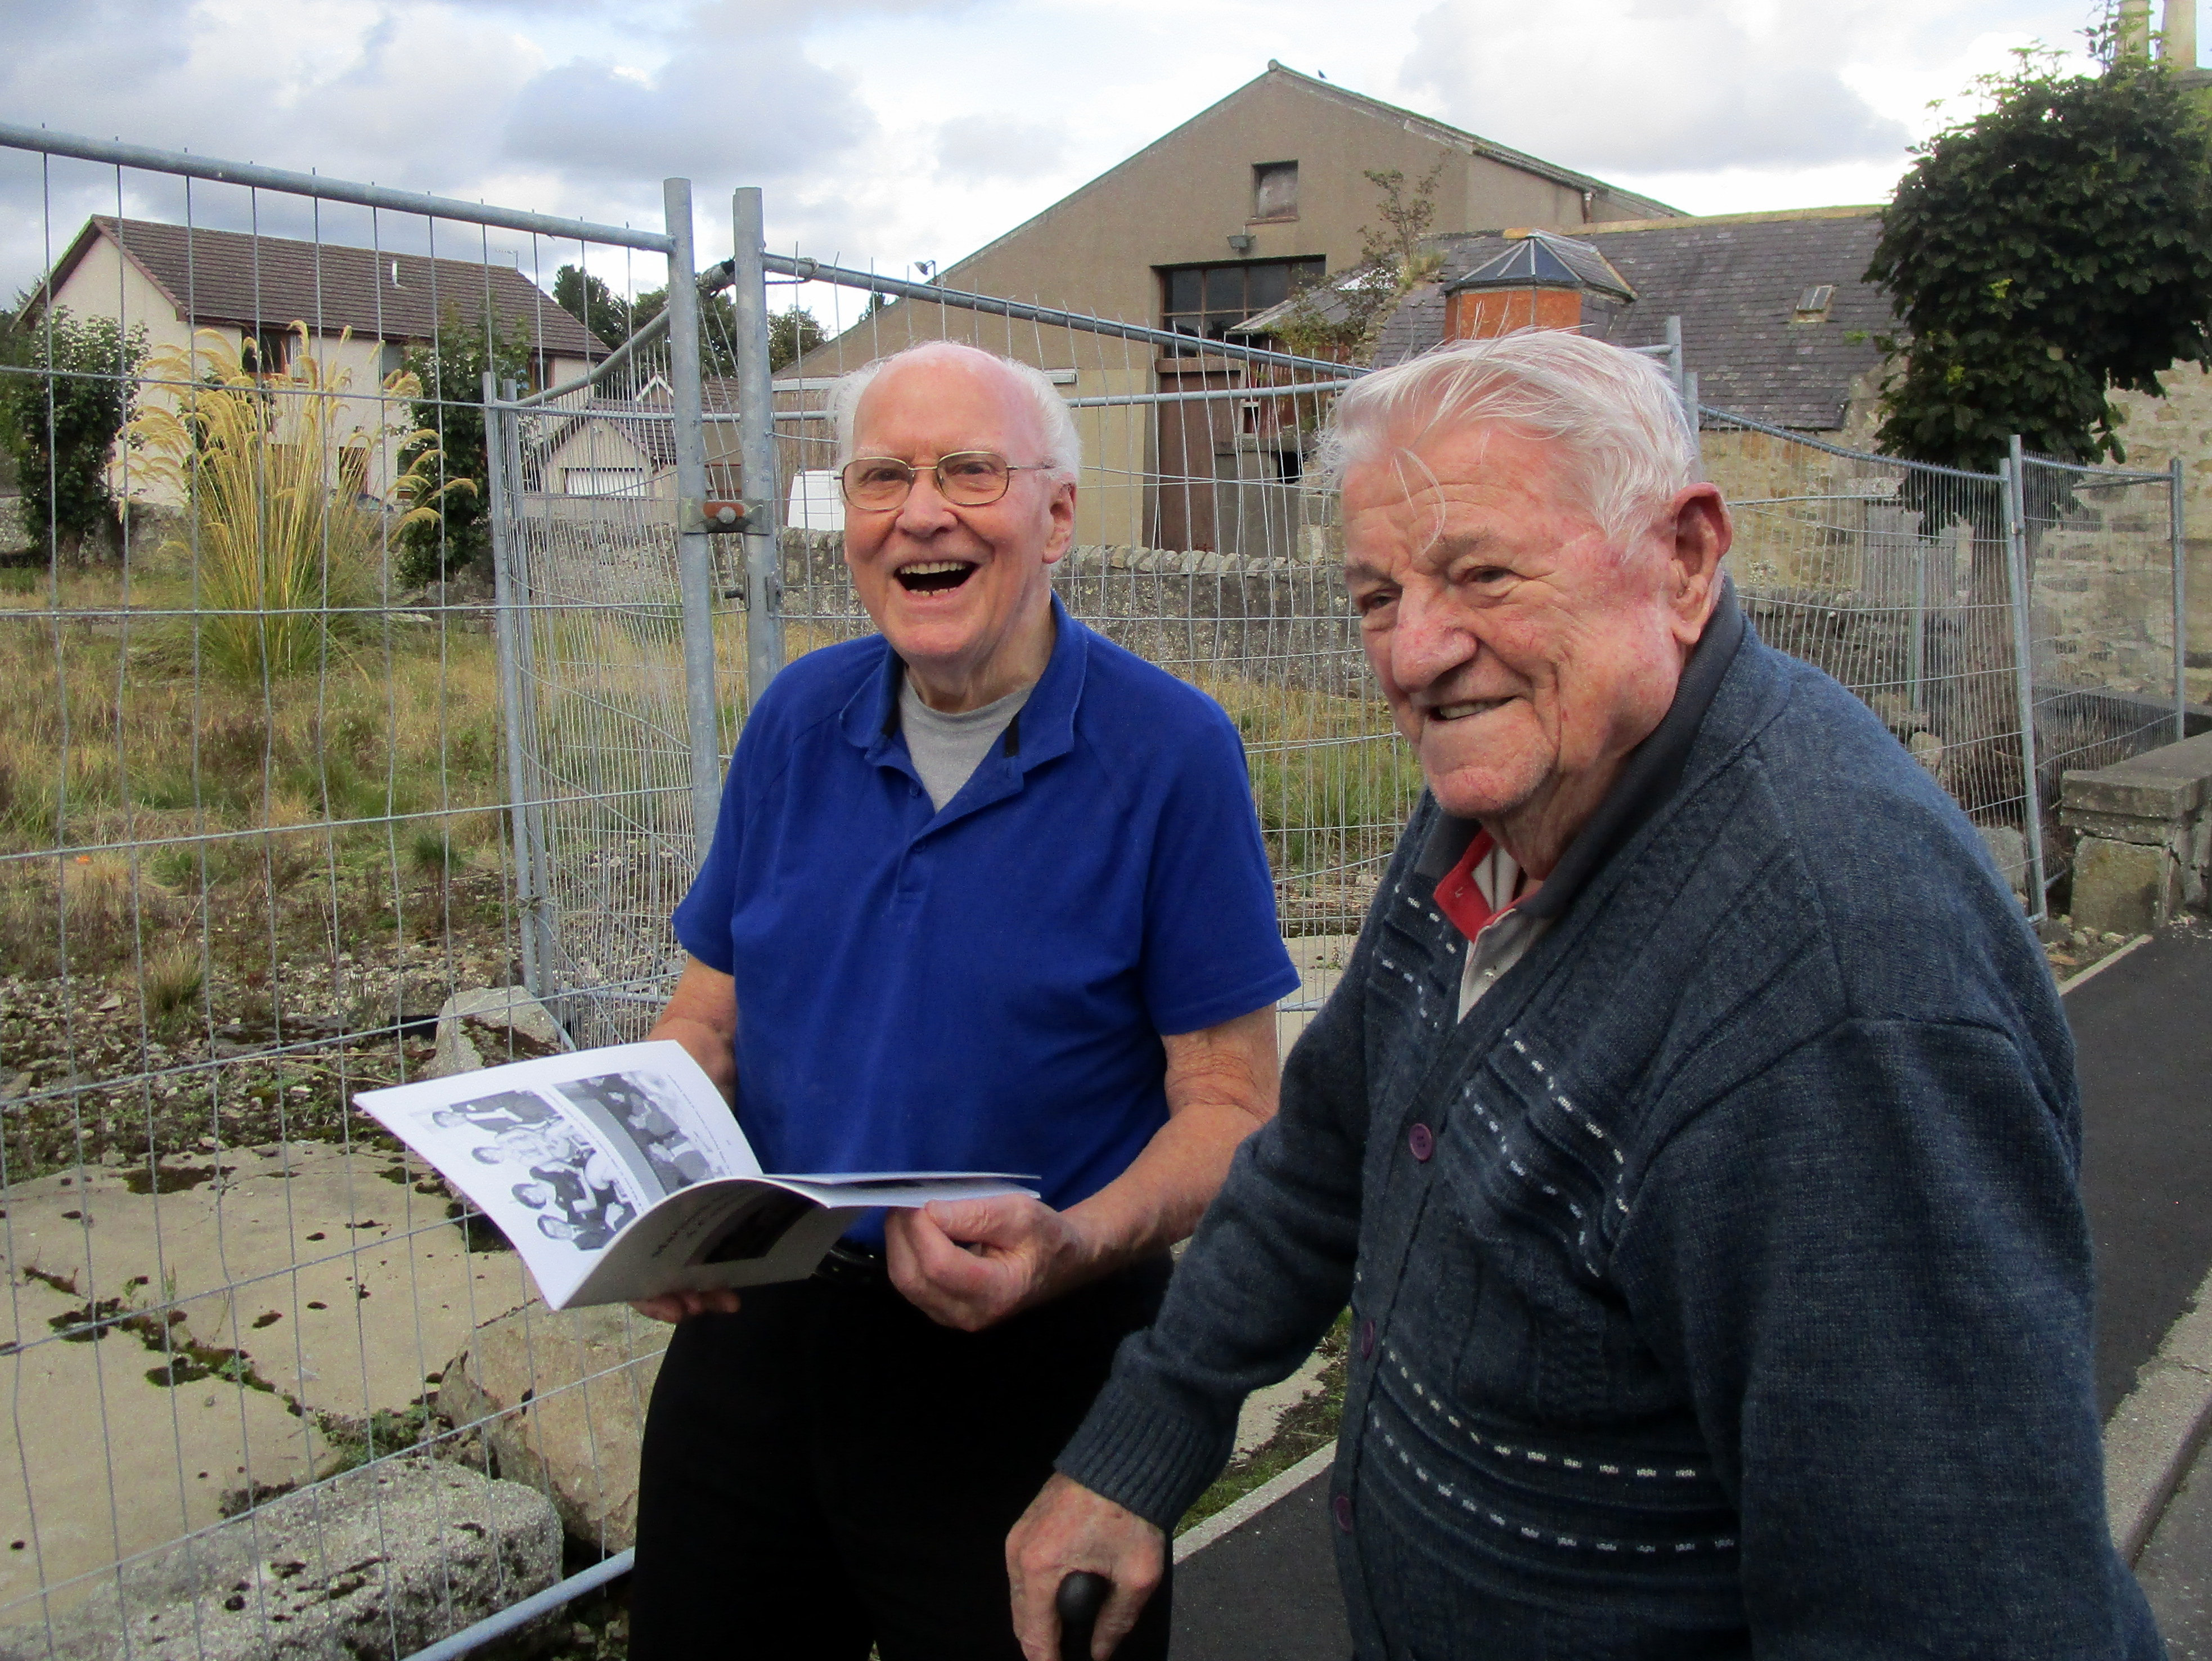 Hugh Youngson, 88, and Charlie Anderson ,91, who grandfathers built the hall, getting a preview of the book in front of the site of the former Marnoch Memorial Hall